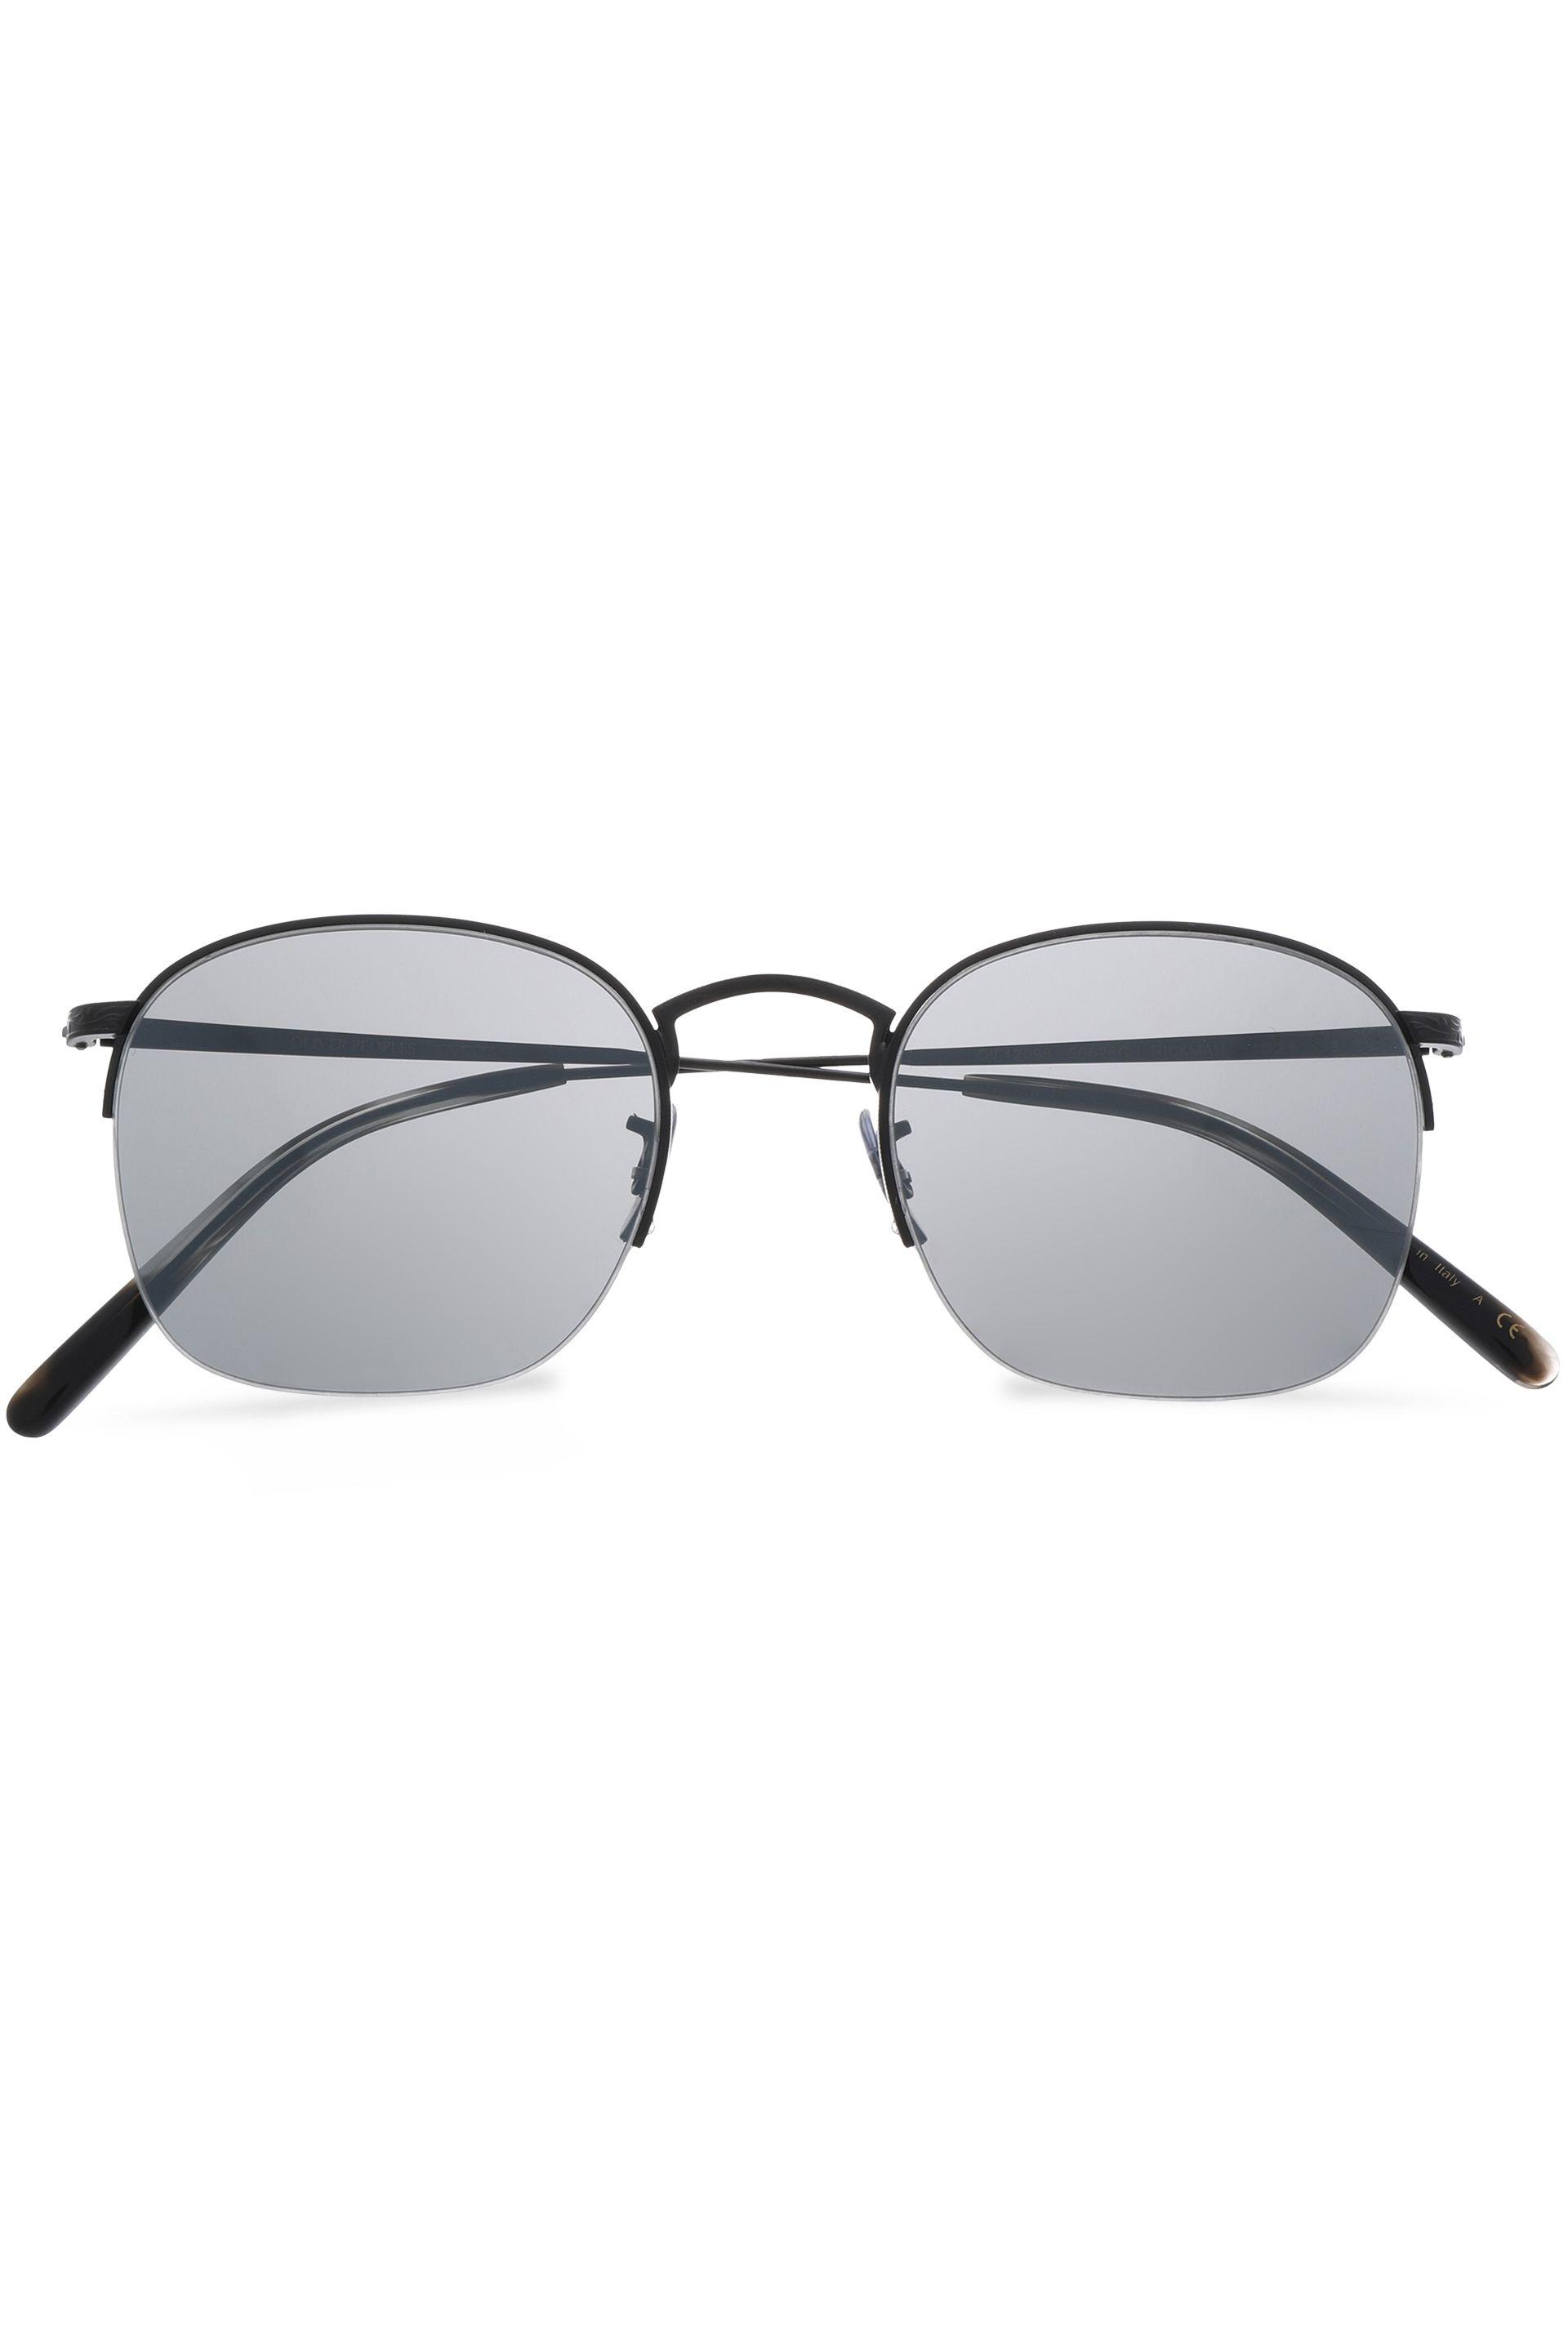 89c04f7789 Oliver Peoples. Women s Woman Square-frame Gold-tone Sunglasses Black